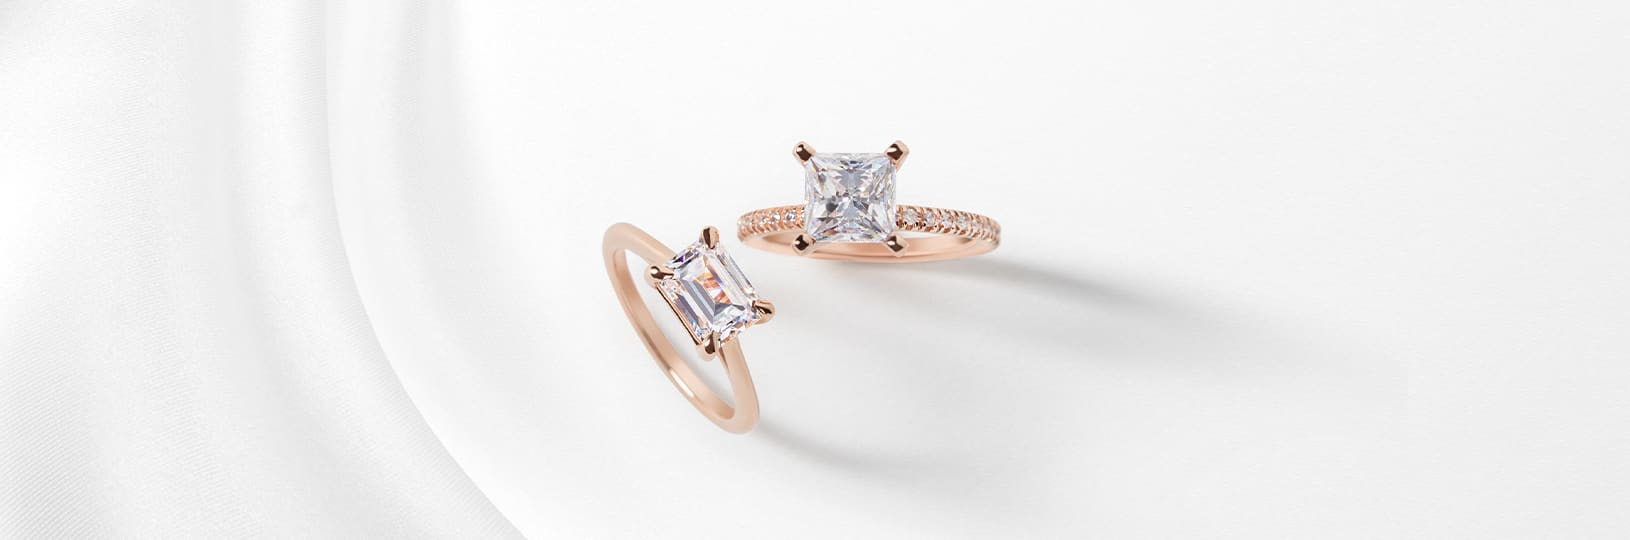 Two rose gold engagement rings